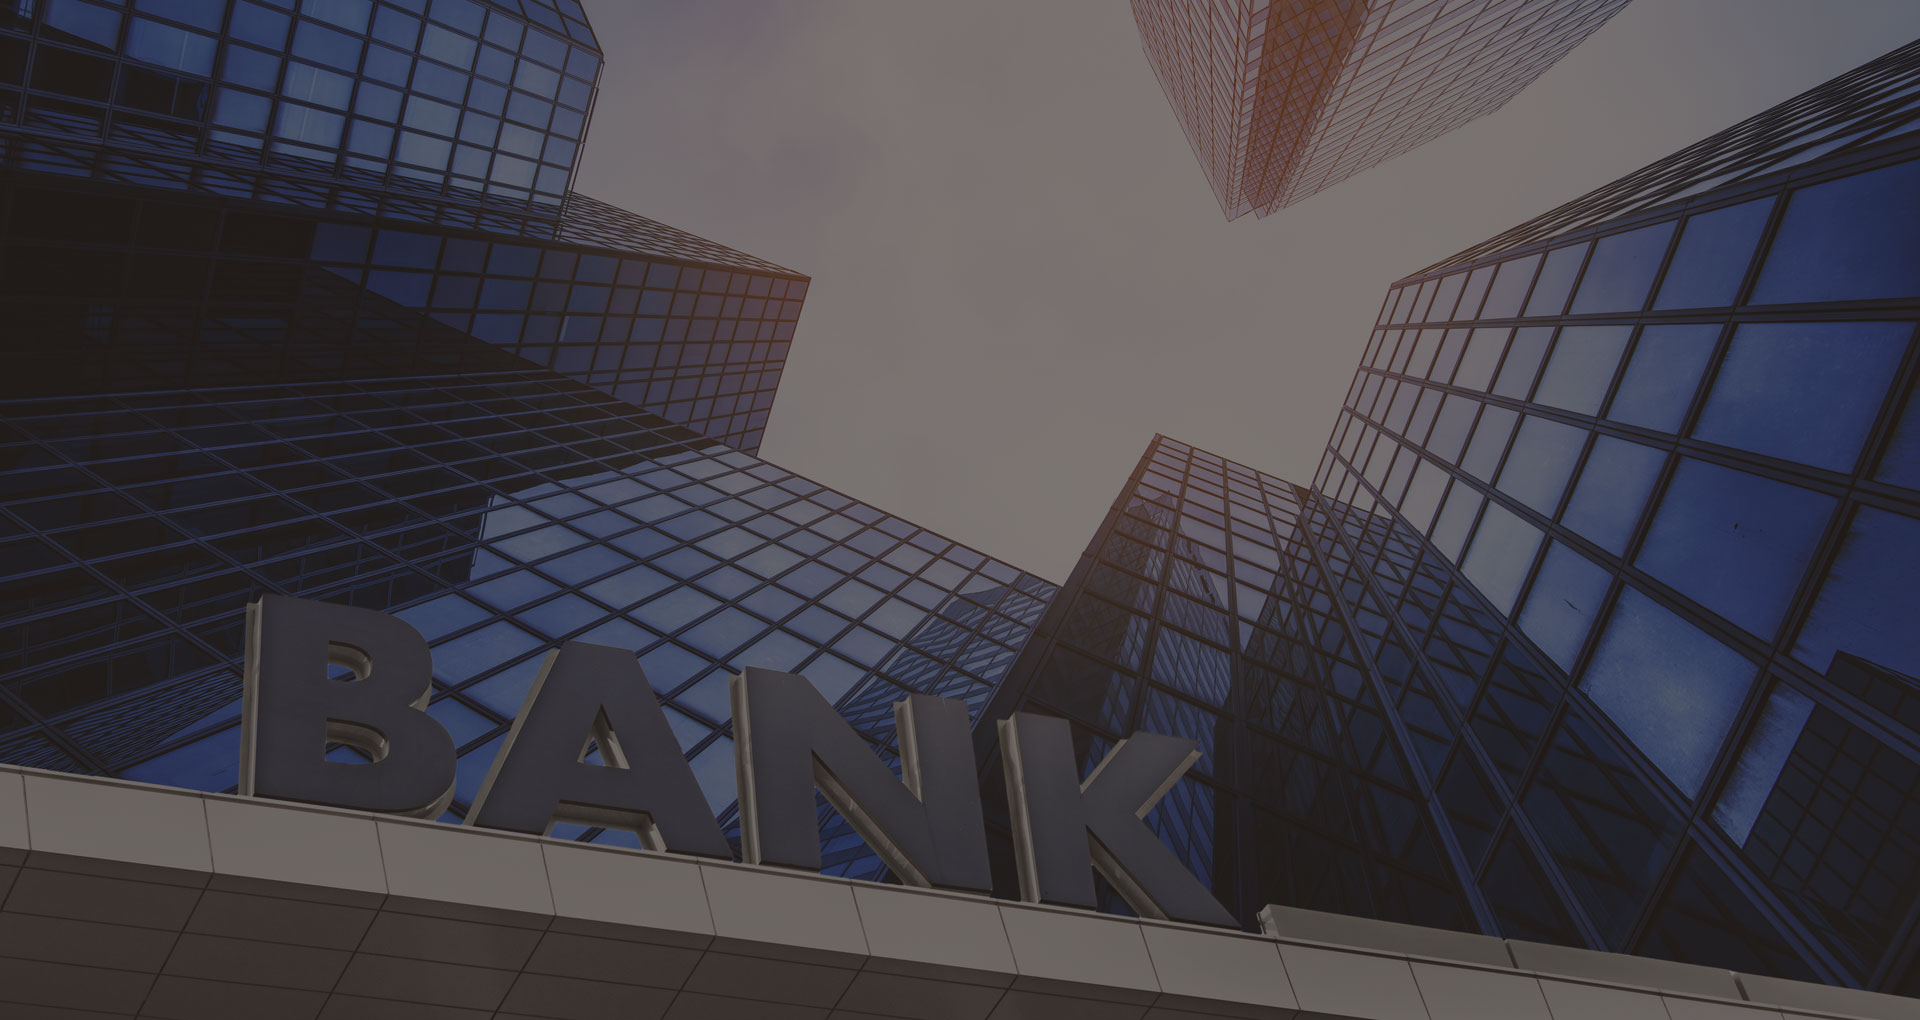 BANKING CREDIT AND FINANCE